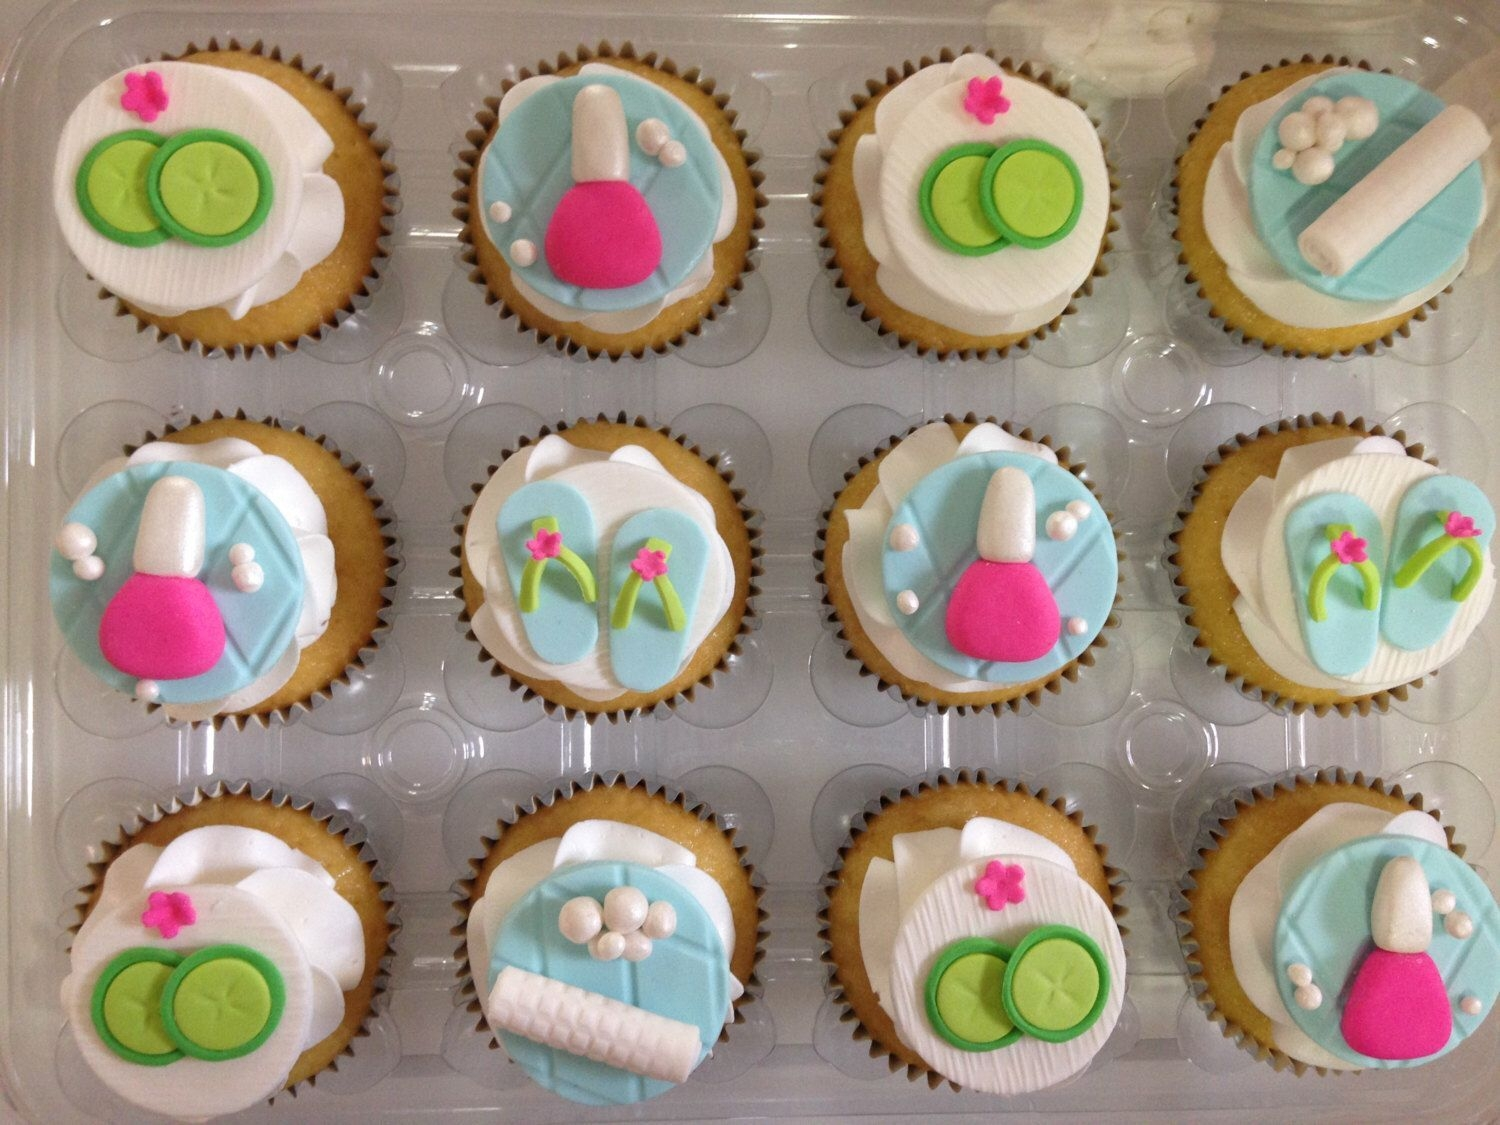 1 Dozen Of Spa Themed Fondant Cupcake Toppers By